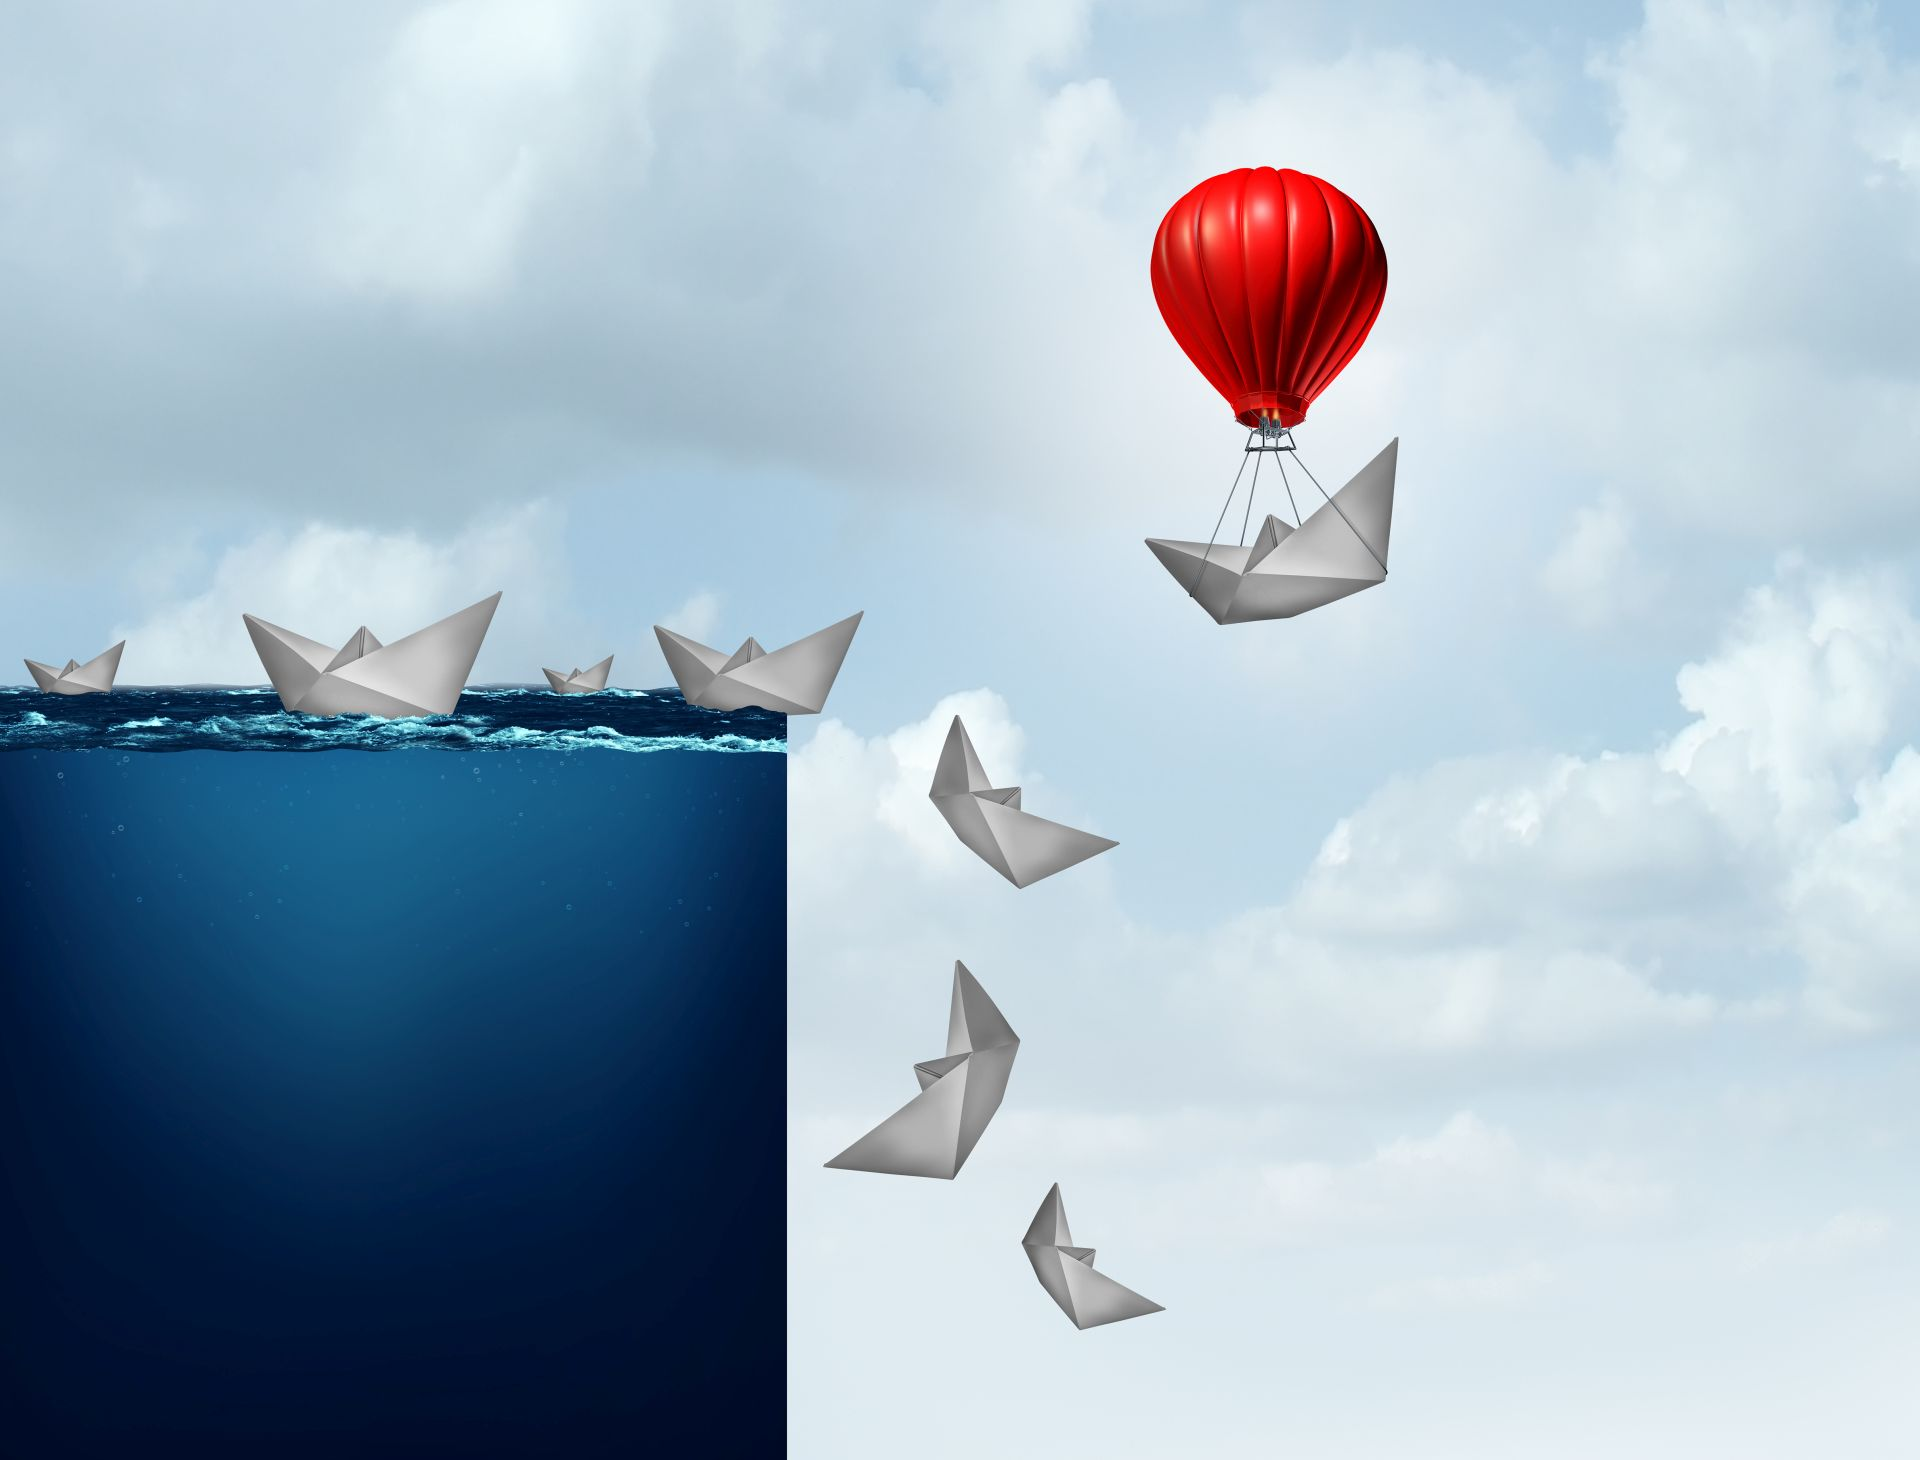 Business insurance plan and corporate liability protection concept as a paper boat lifted away from doom with 3D illustration elements.